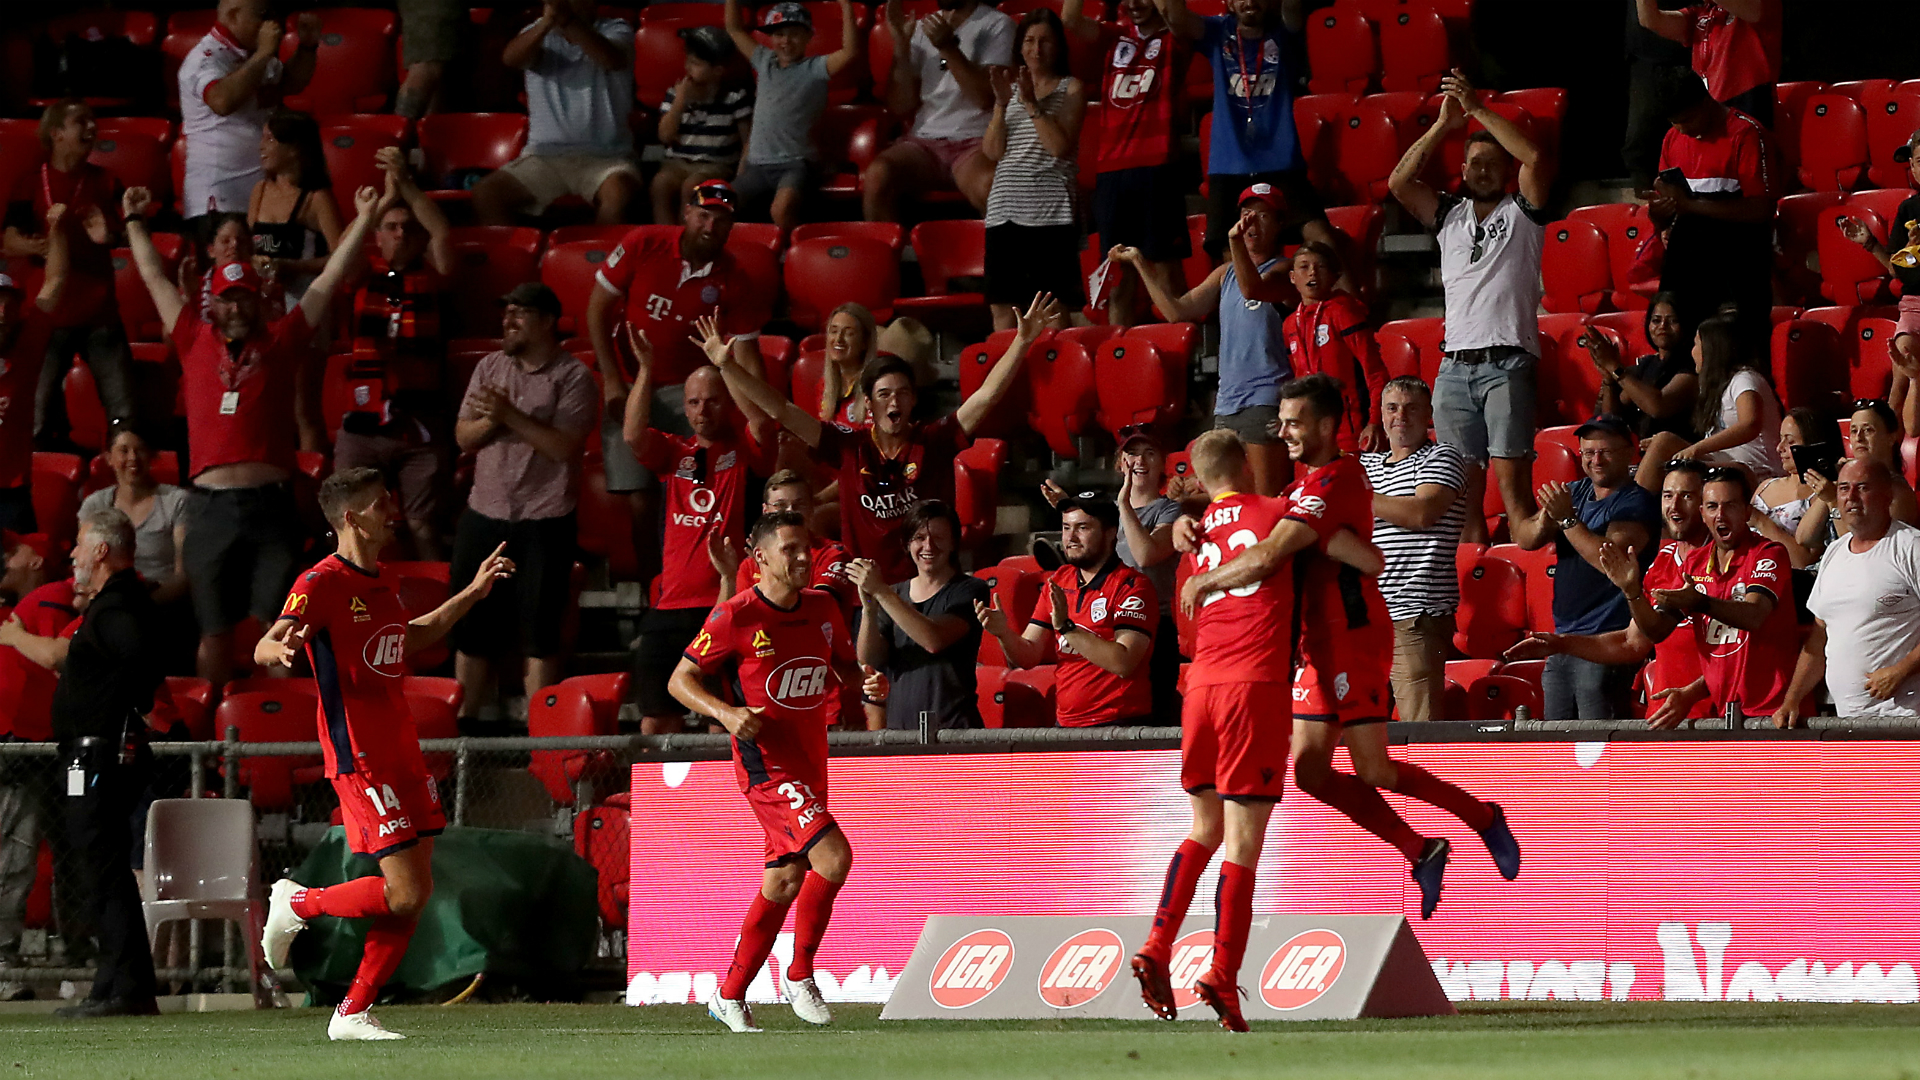 Adelaide United Picture: Adelaide United Pull Off Miraculous Comeback Over Brisbane